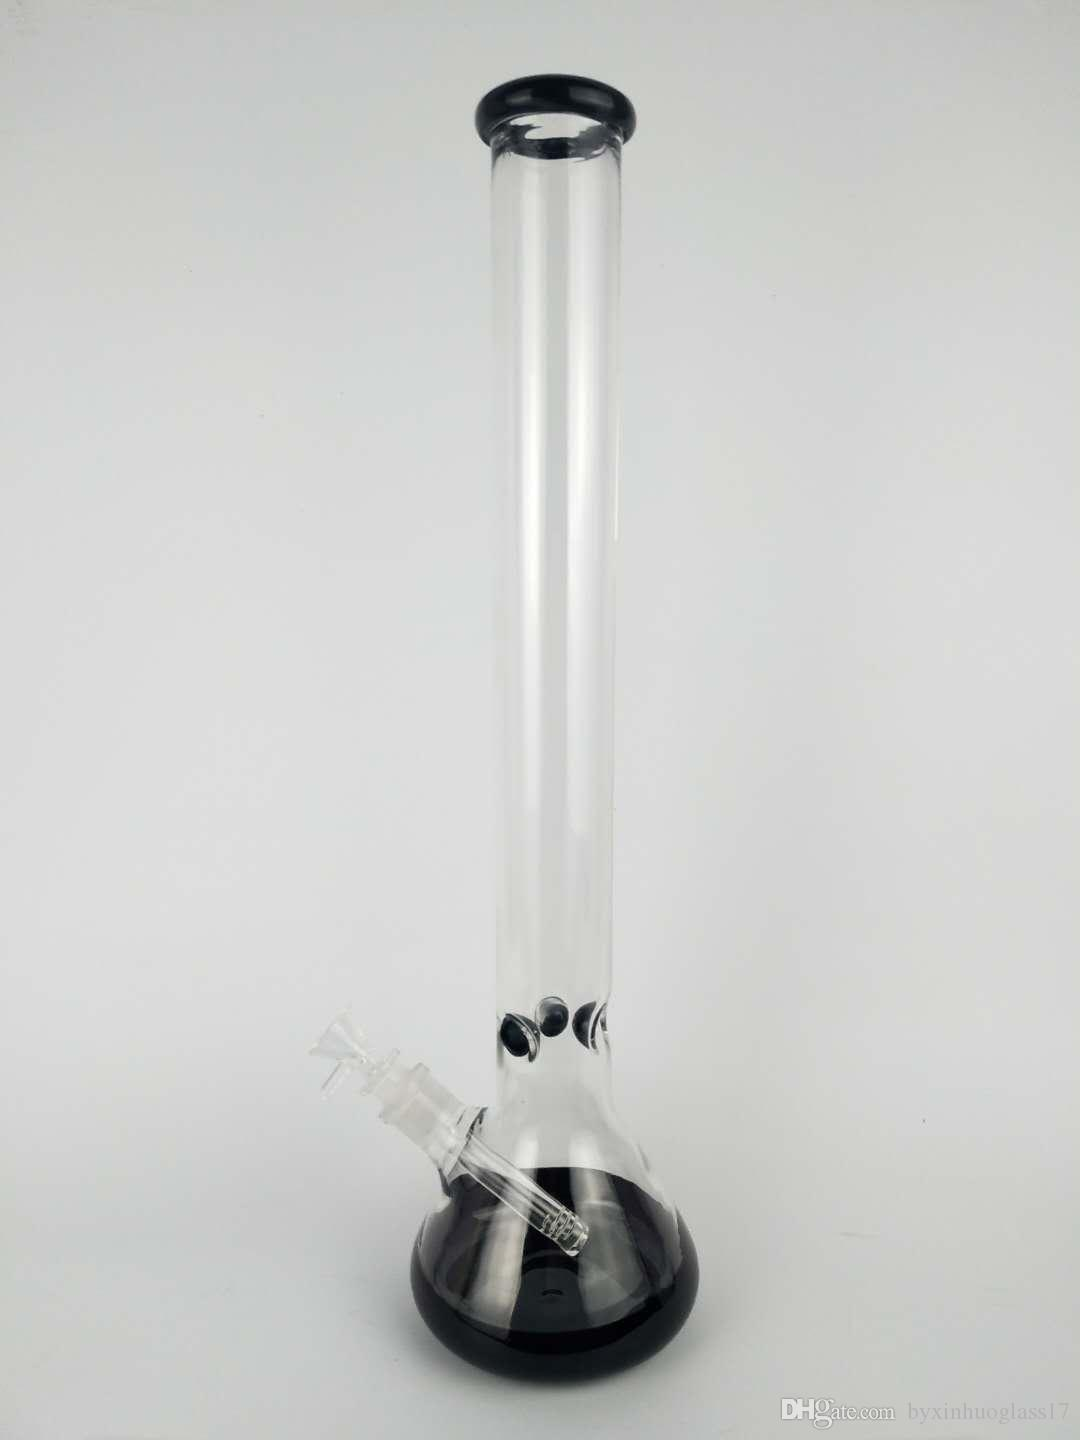 h:48cm Glass bongs for sale 2017 cheap glass bong with percolator diffuser arm tree perc beaker bong free shipping glass water bong